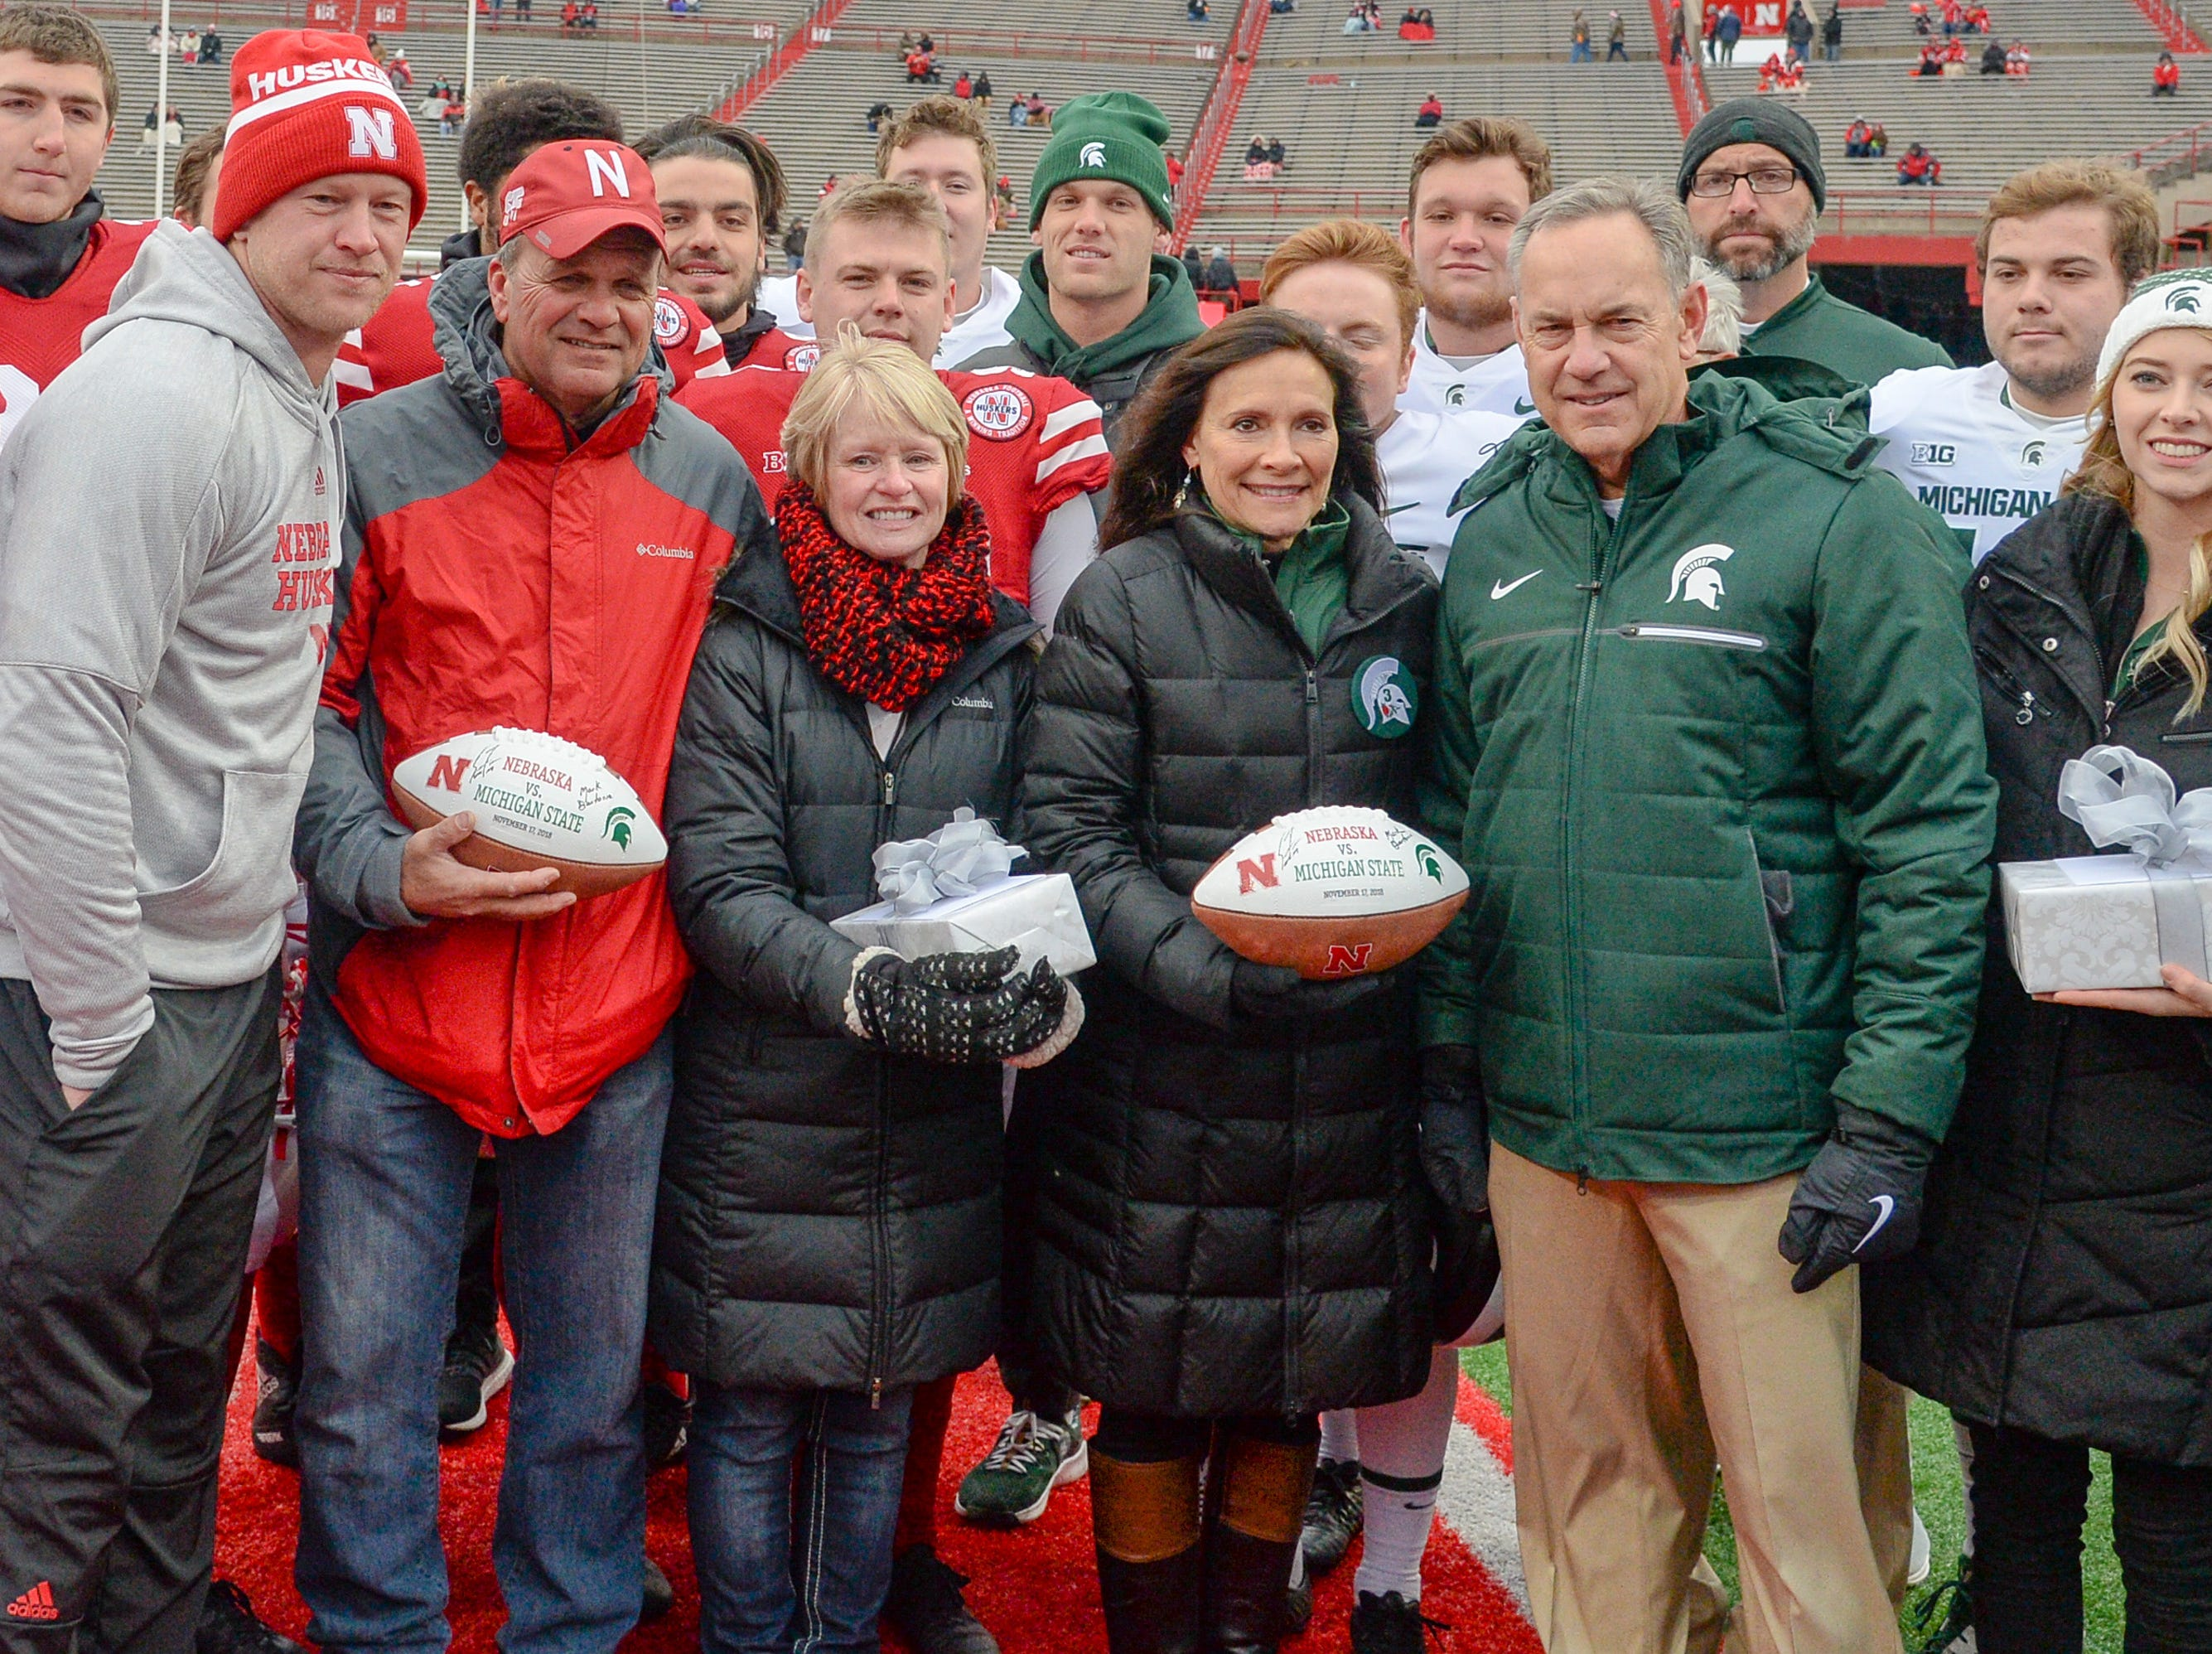 (From left) Nebraska coach Scott Frost and Gerald and Jill Foltz, parents of the deceased kicker Sam Foltz, and Michigan State coach Mark Dantonio and Karen Sadler and Katie Sadler, mother and sister of deceased kicker Mike Sadler, meet on the field for a ceremony before the game on Saturday, Nov. 17, 2018, in Lincoln, Neb.